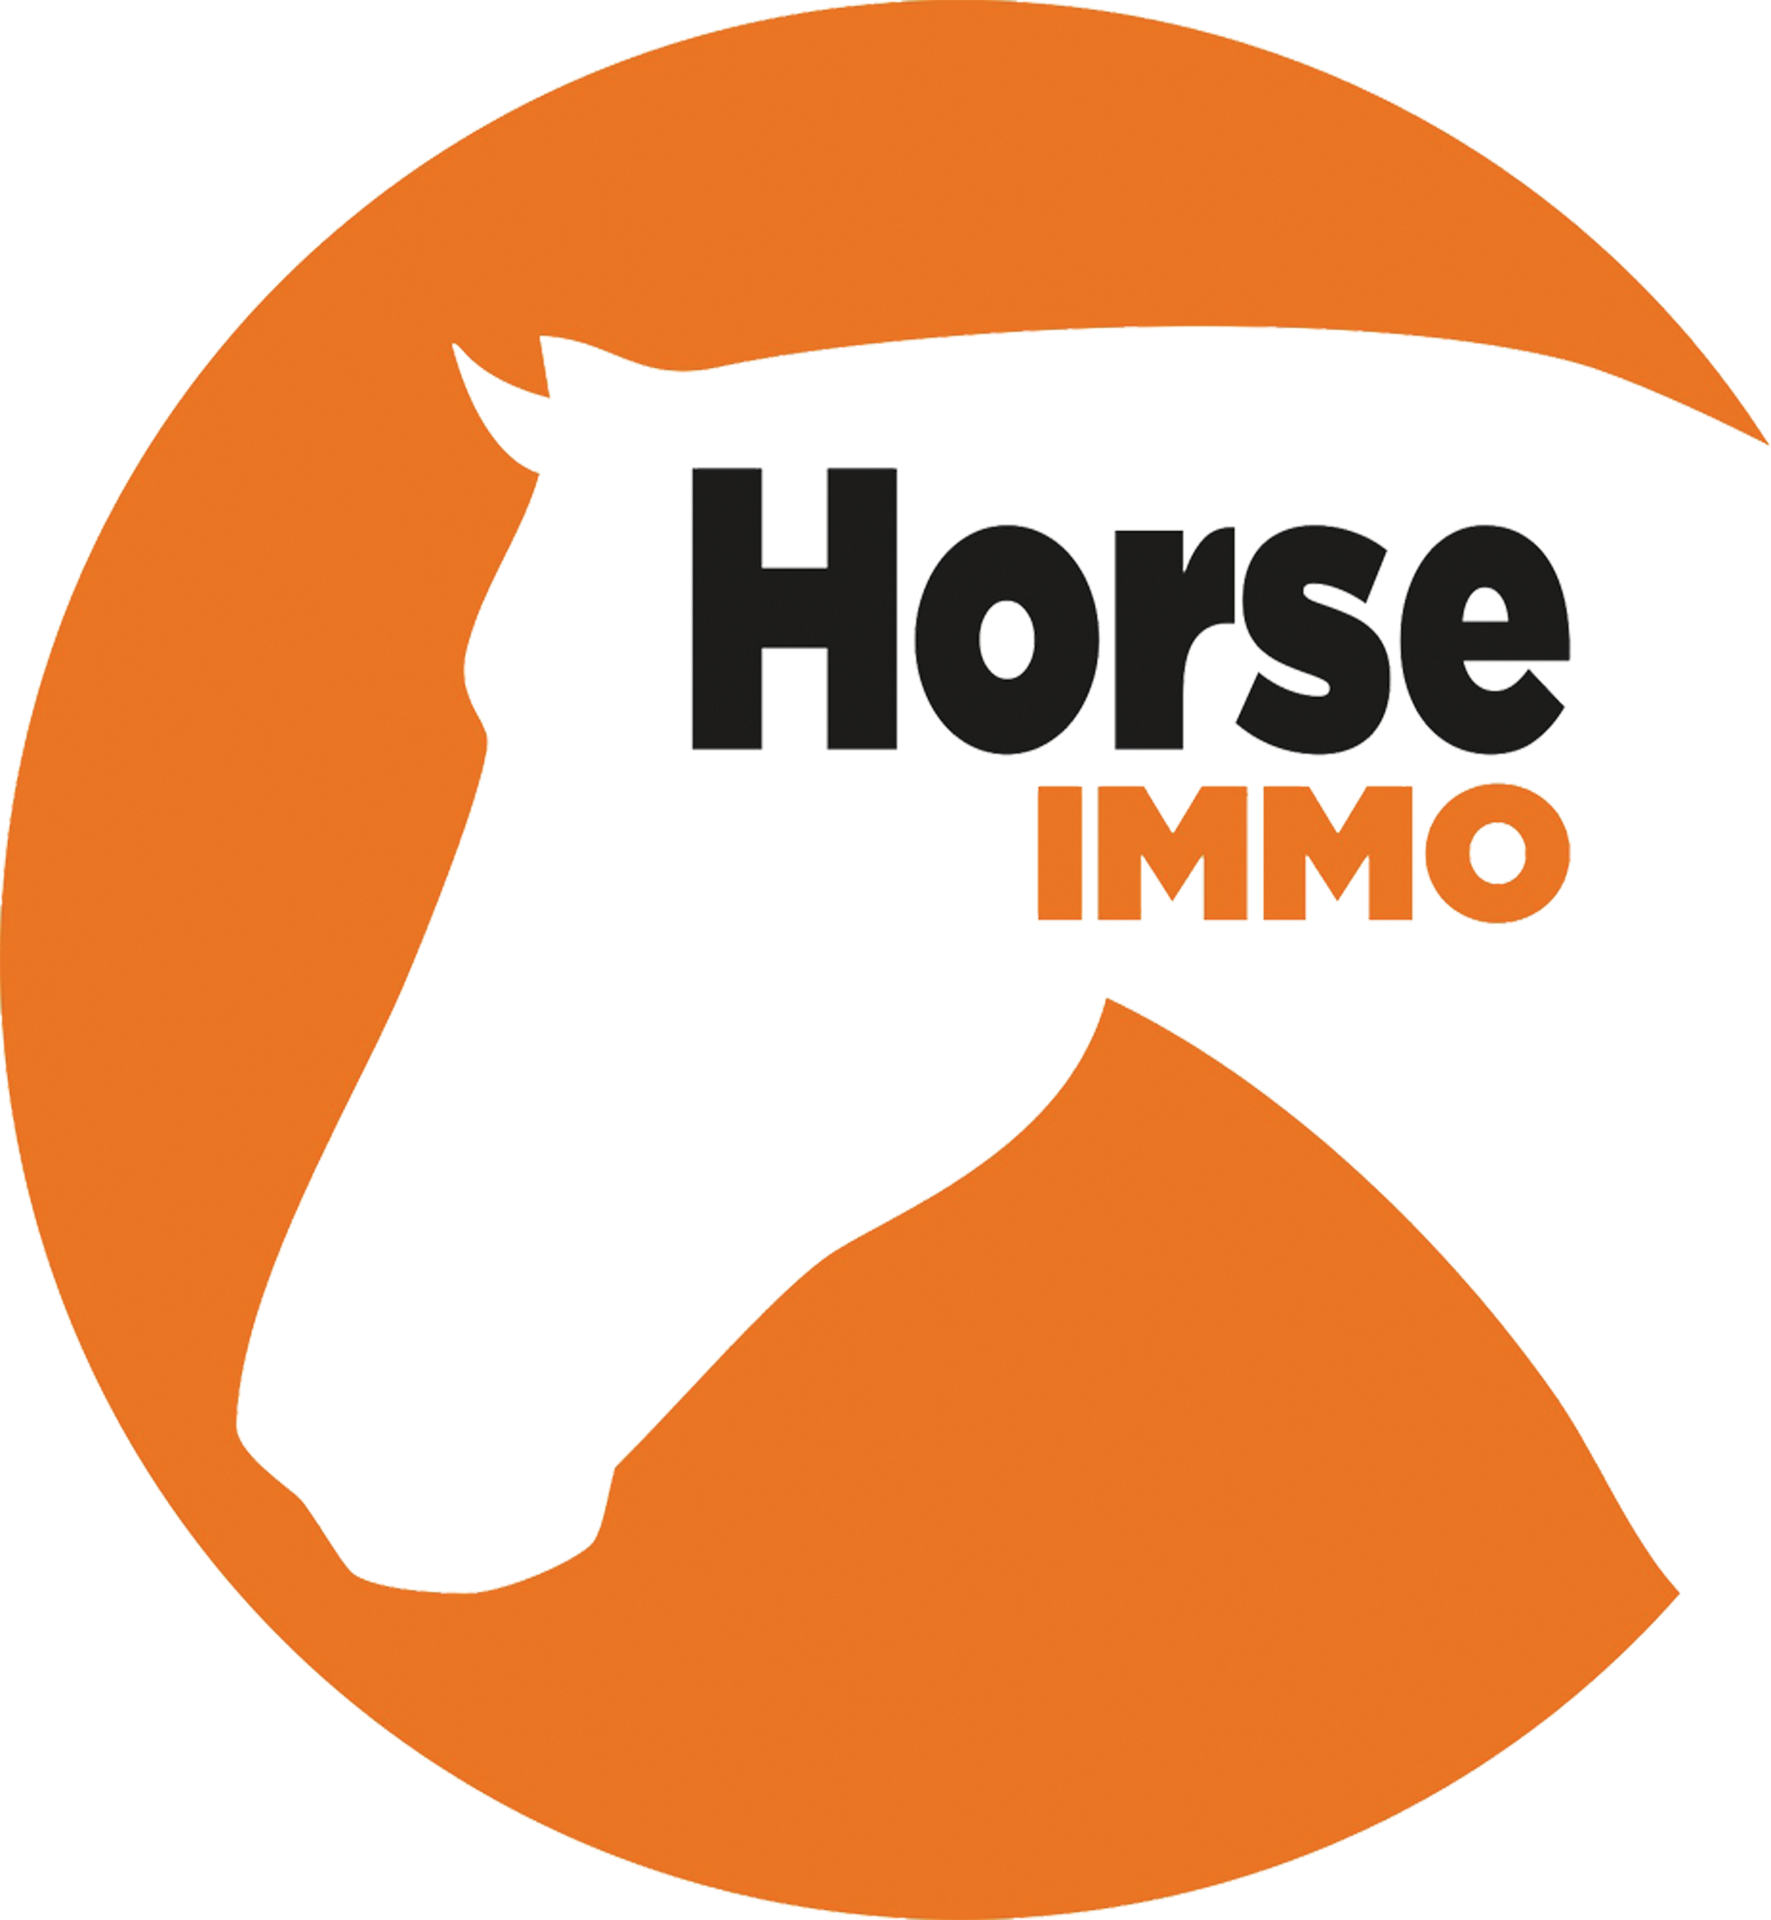 horse immo.png